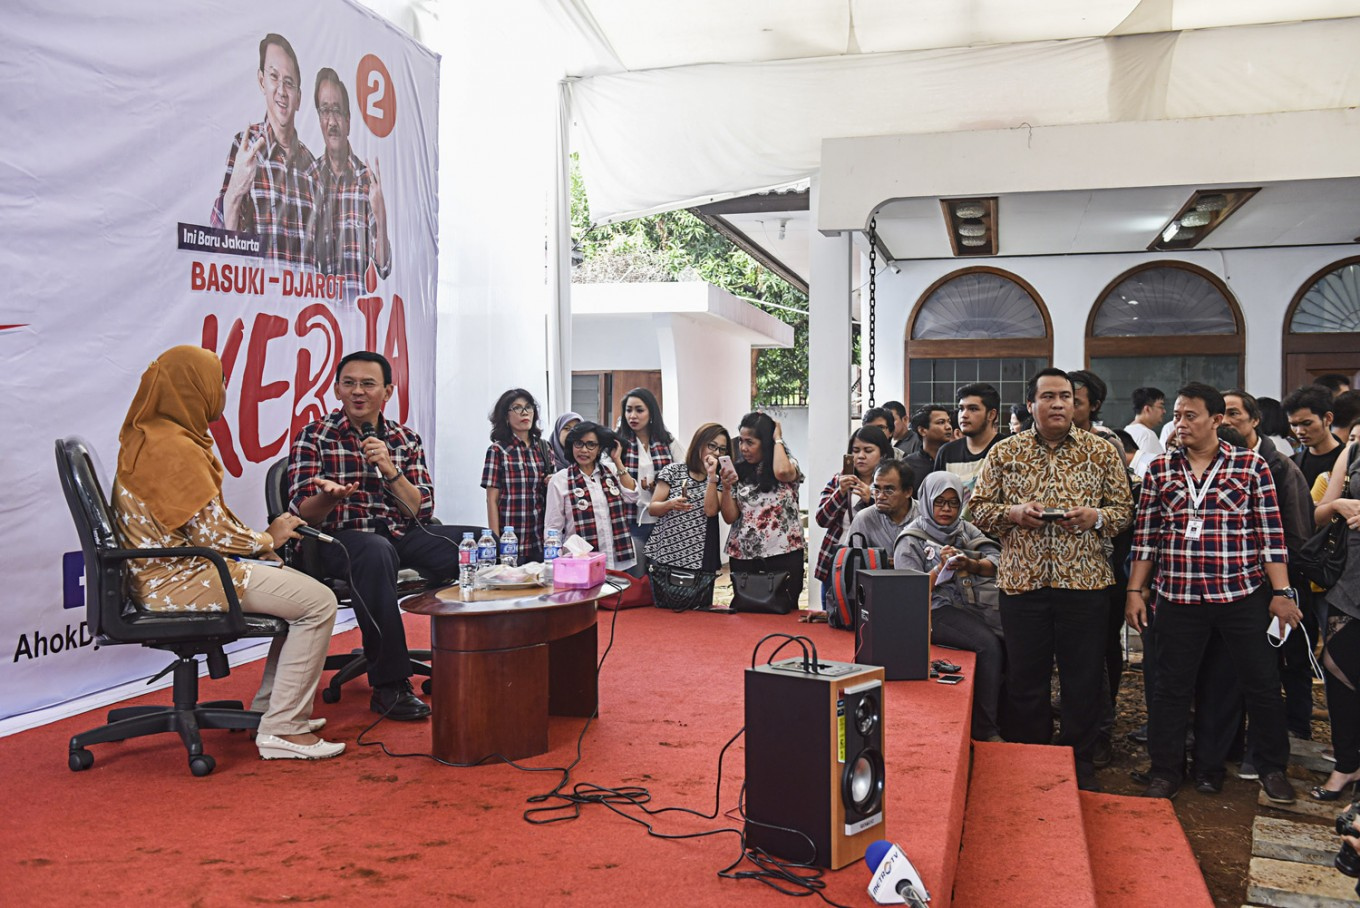 Ahok to continue 'blusukan' despite protests